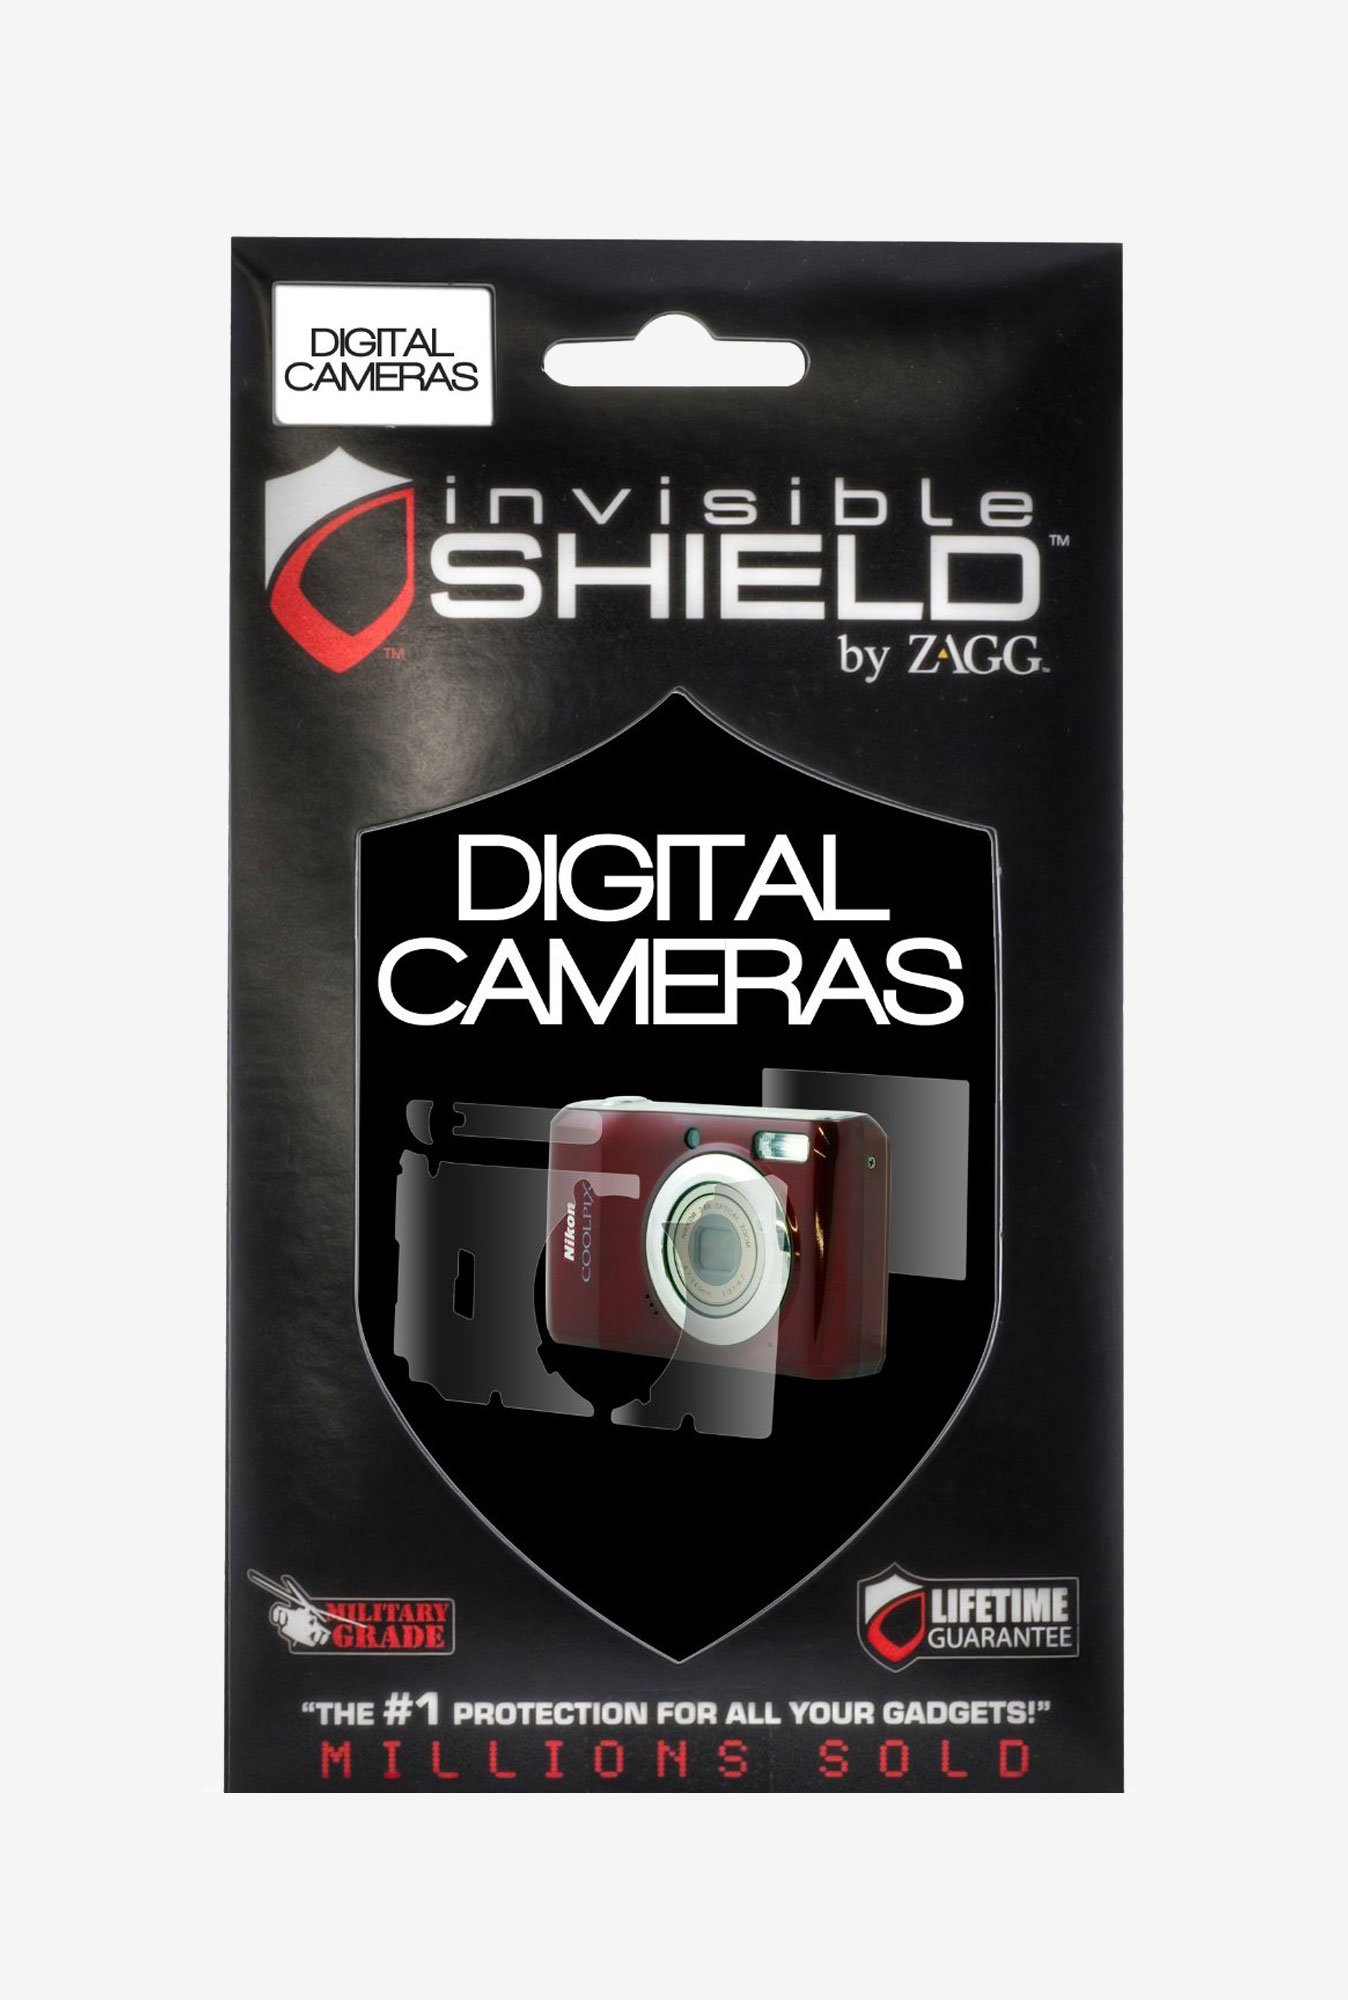 Invisibleshield Zagg For Nikon D50